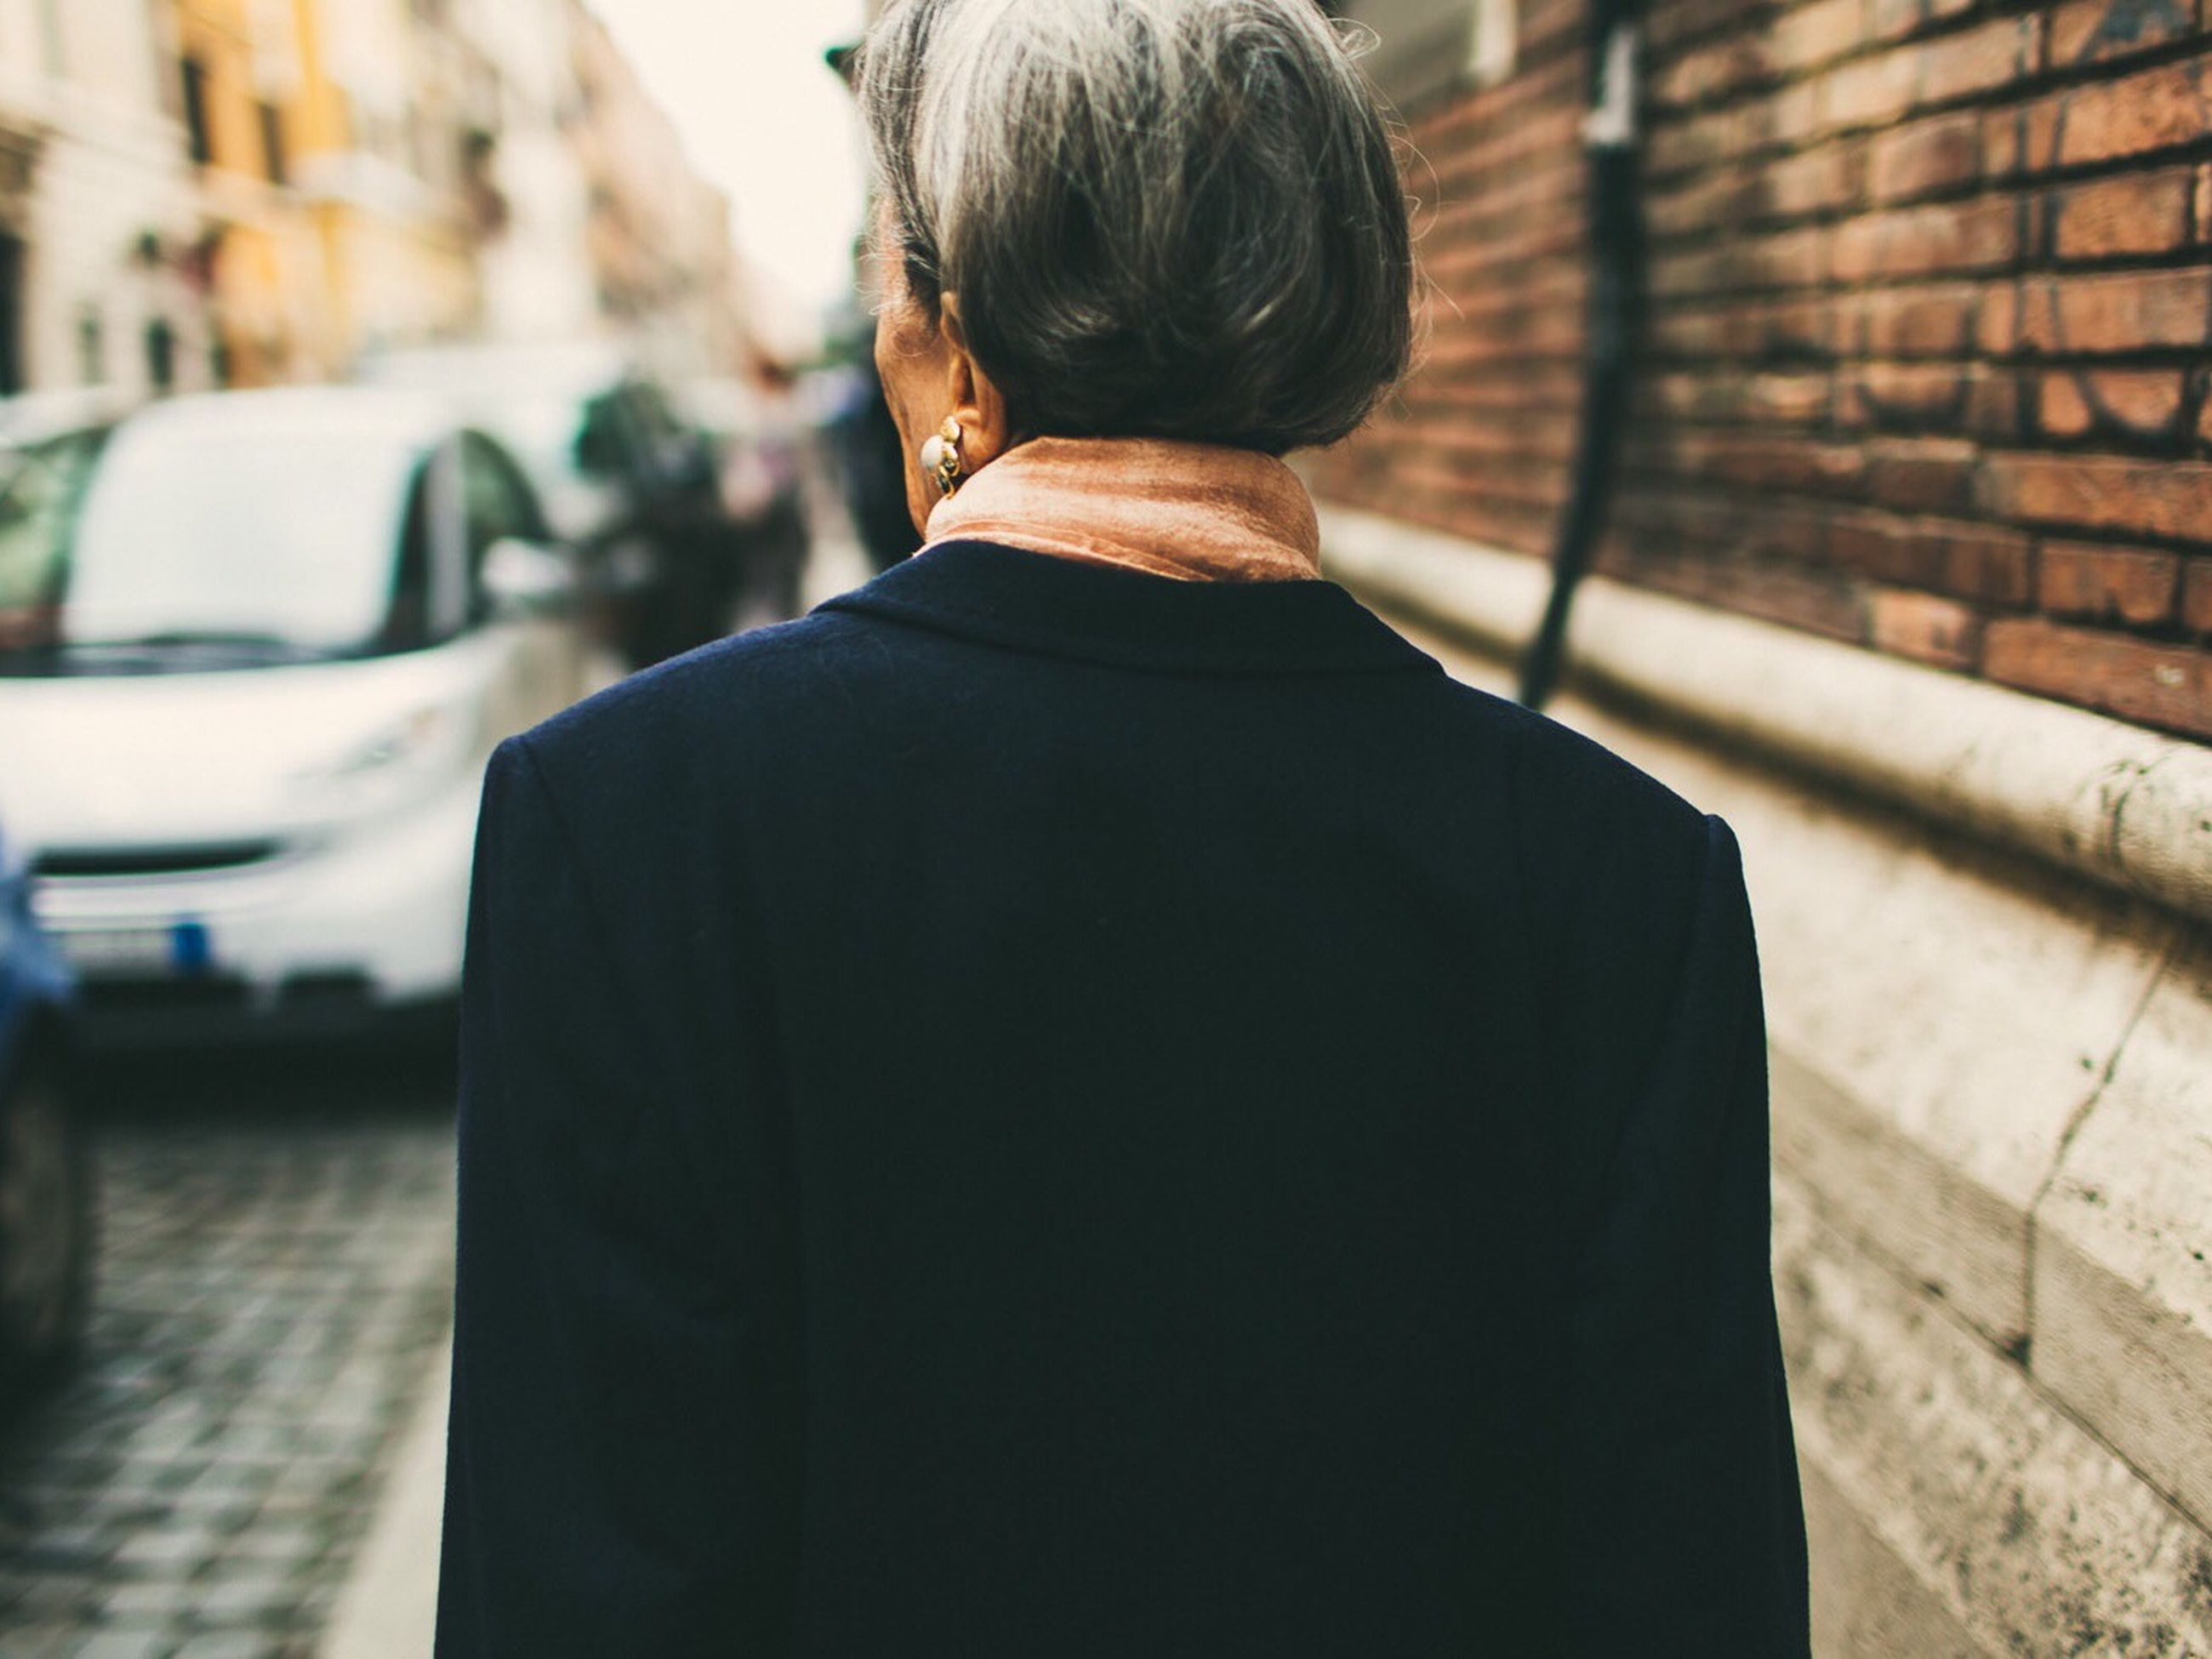 rear view, lifestyles, casual clothing, focus on foreground, standing, leisure activity, men, built structure, waist up, three quarter length, architecture, building exterior, side view, person, selective focus, jacket, day, walking